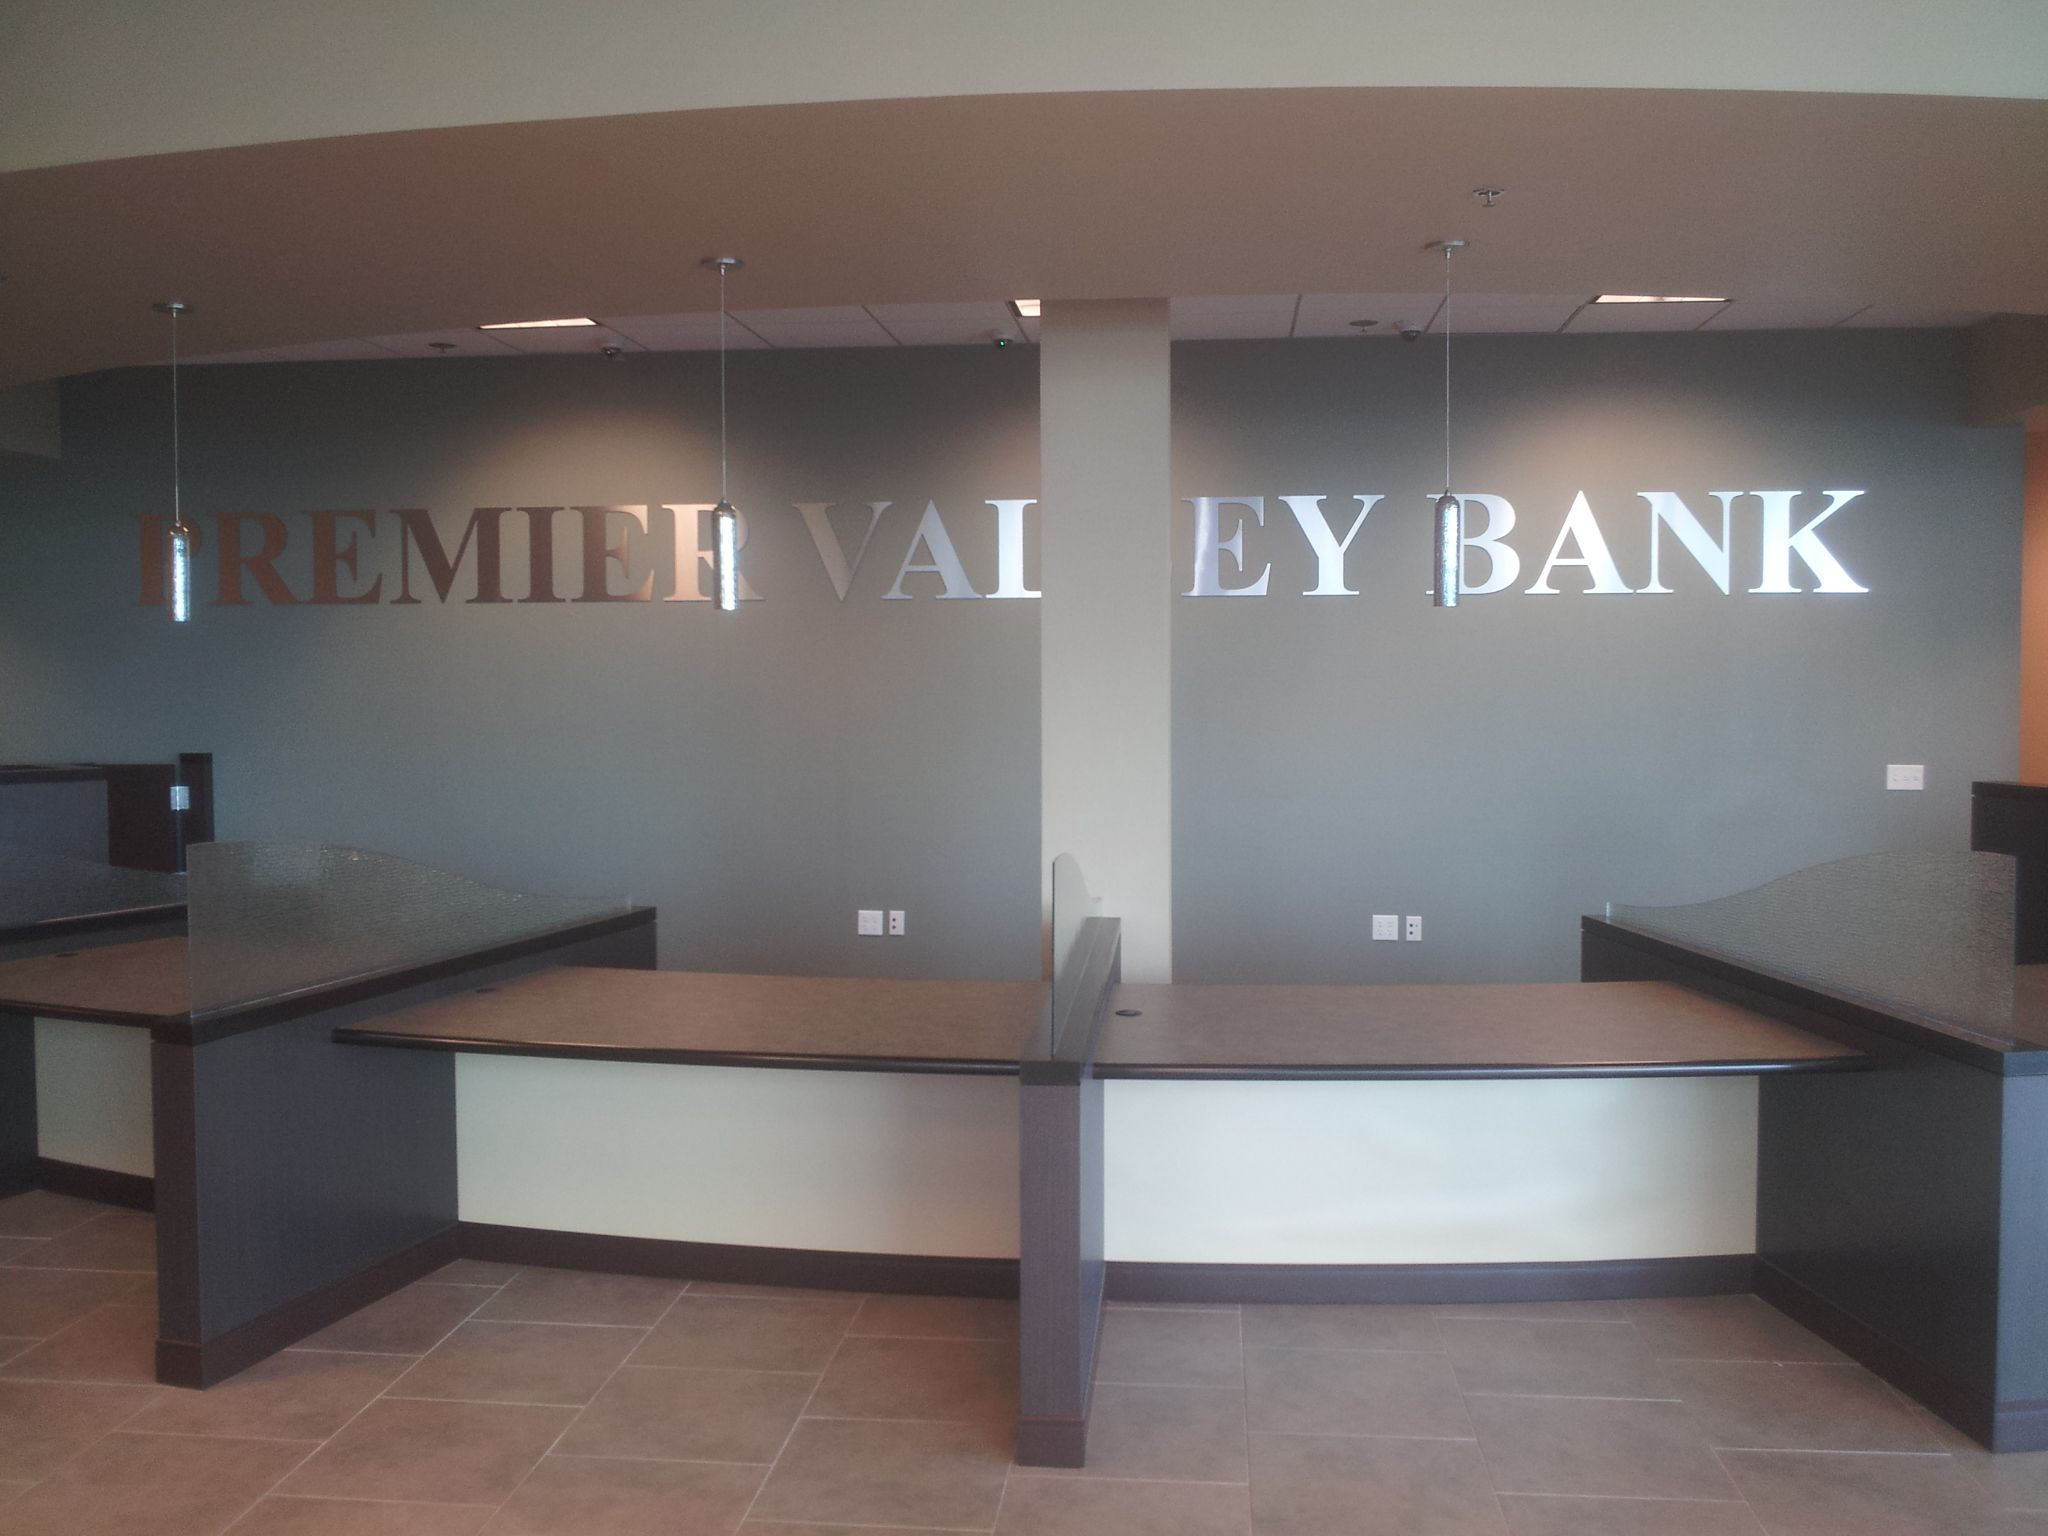 Premier Valley Bank